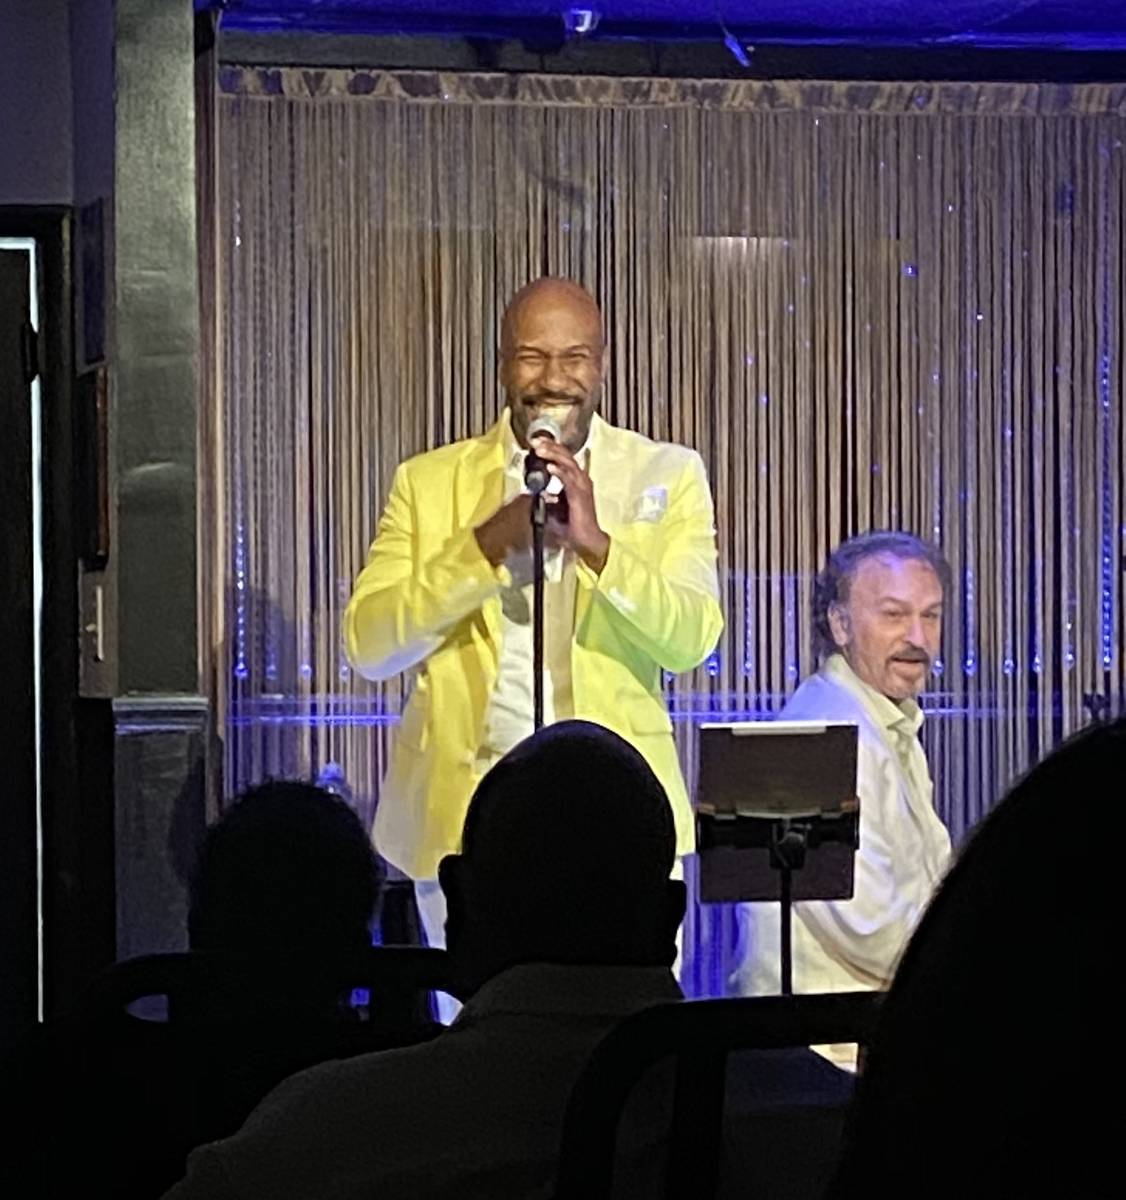 Eric Jordan Young and Philip Fortenberry are shown at The Vegas Room on Saturday, June 20, 2020 ...